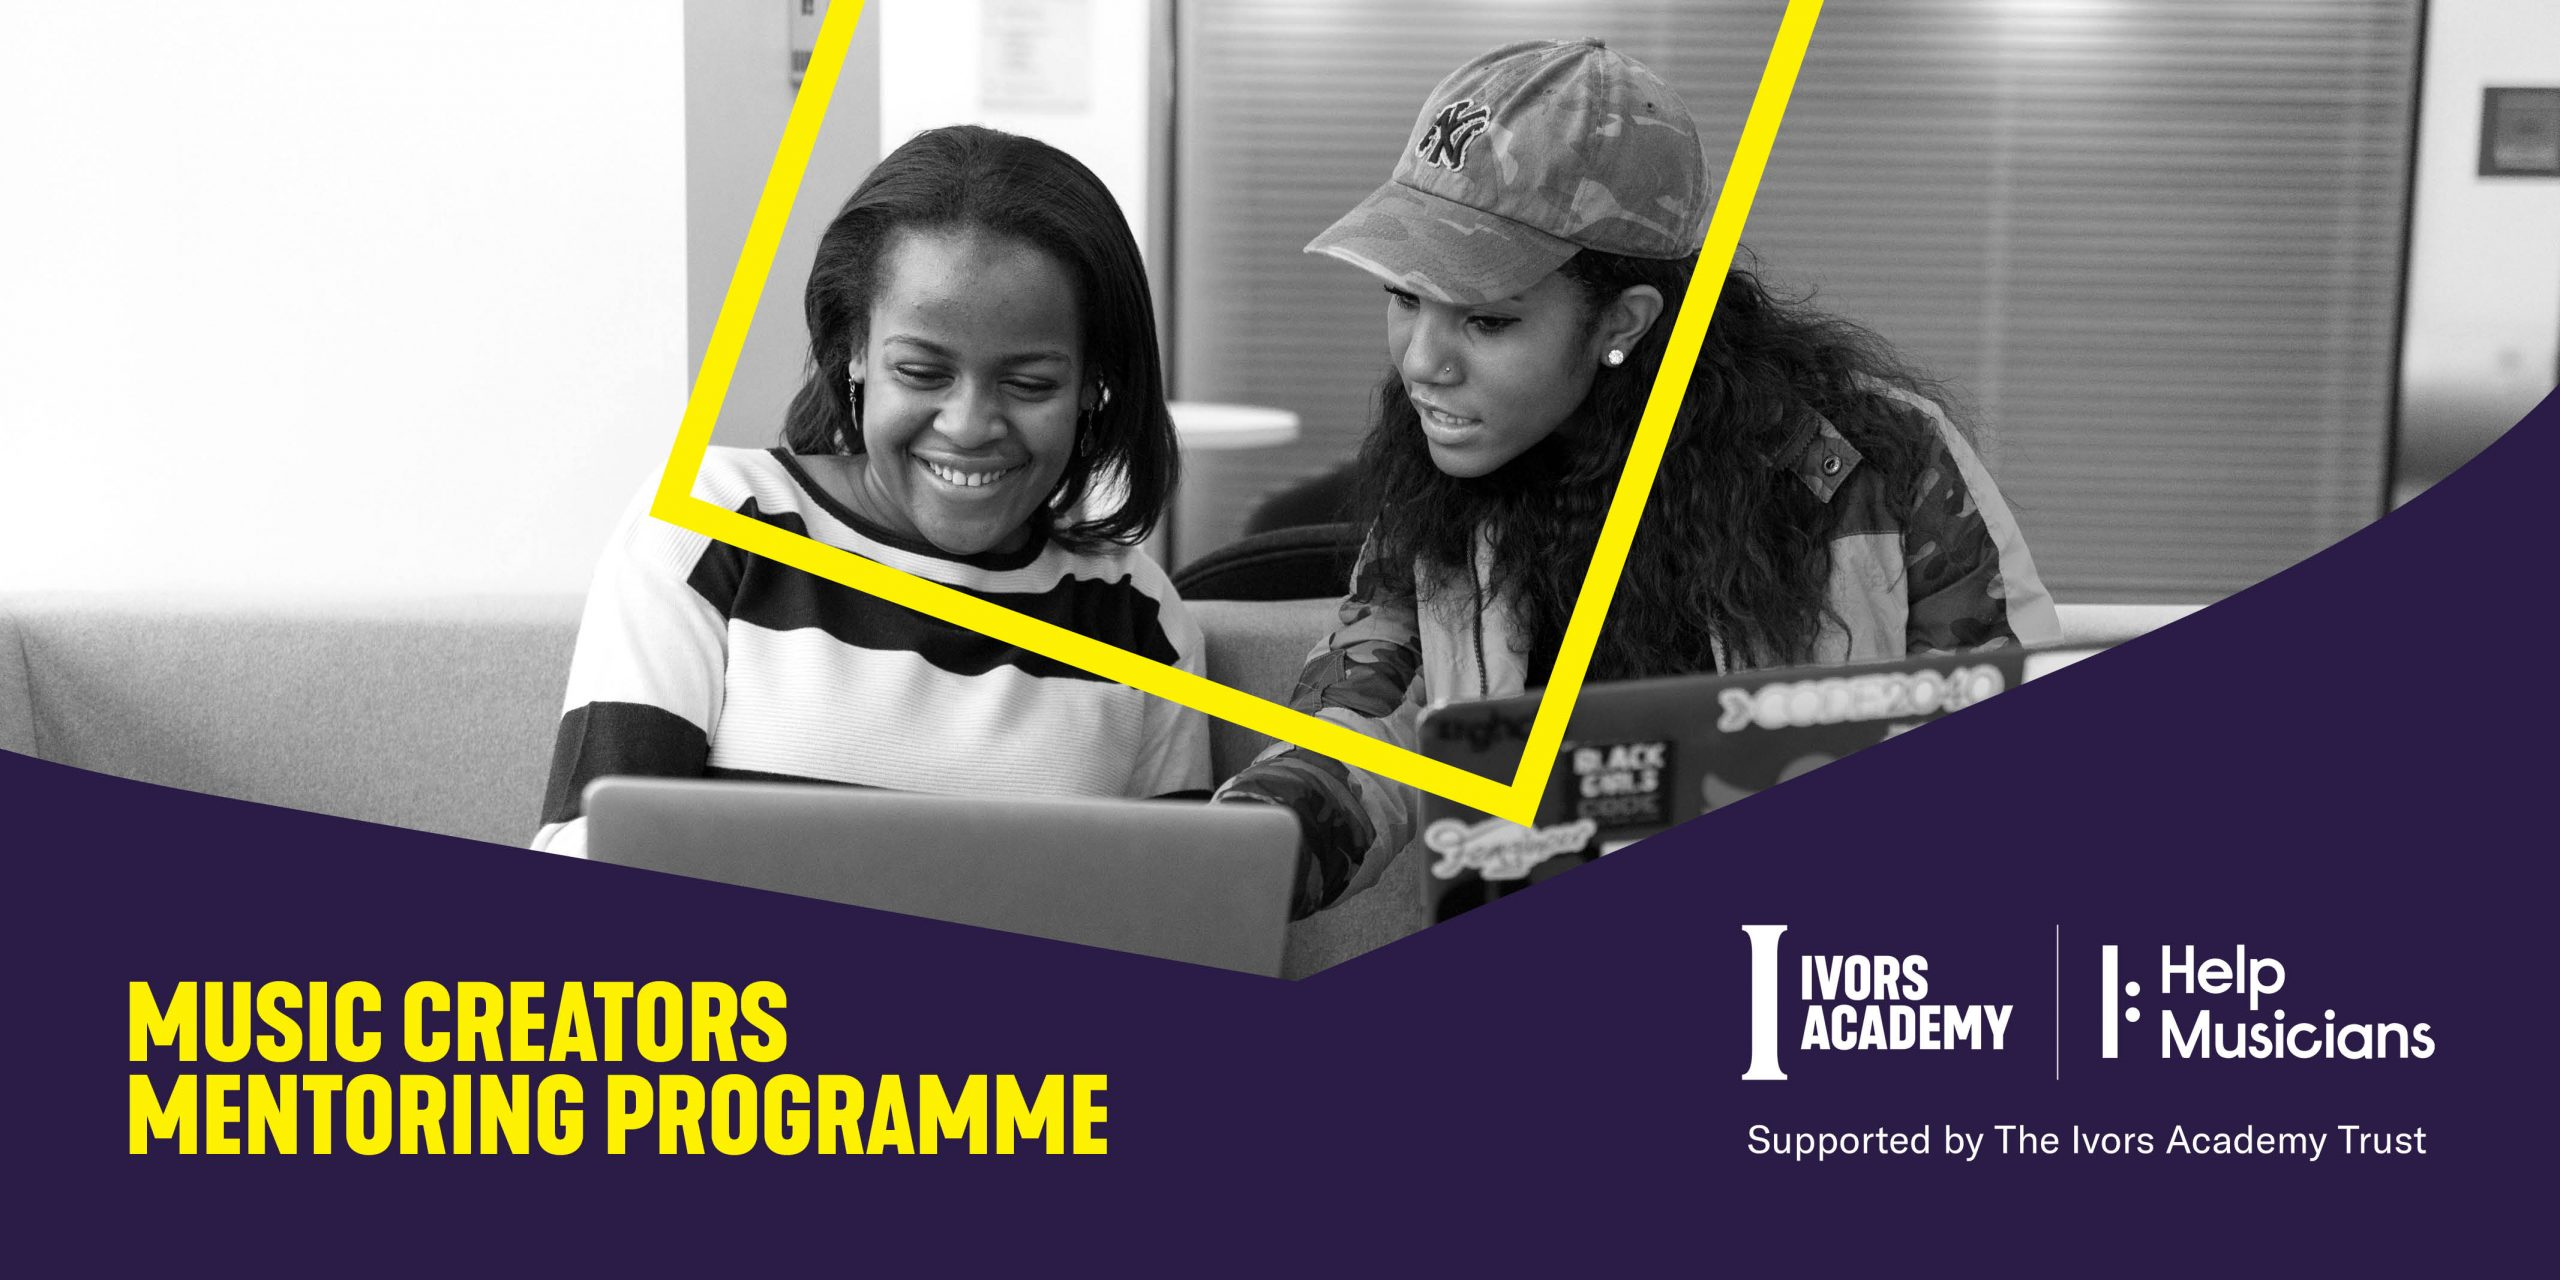 Music Creators Mentoring Programme Launched